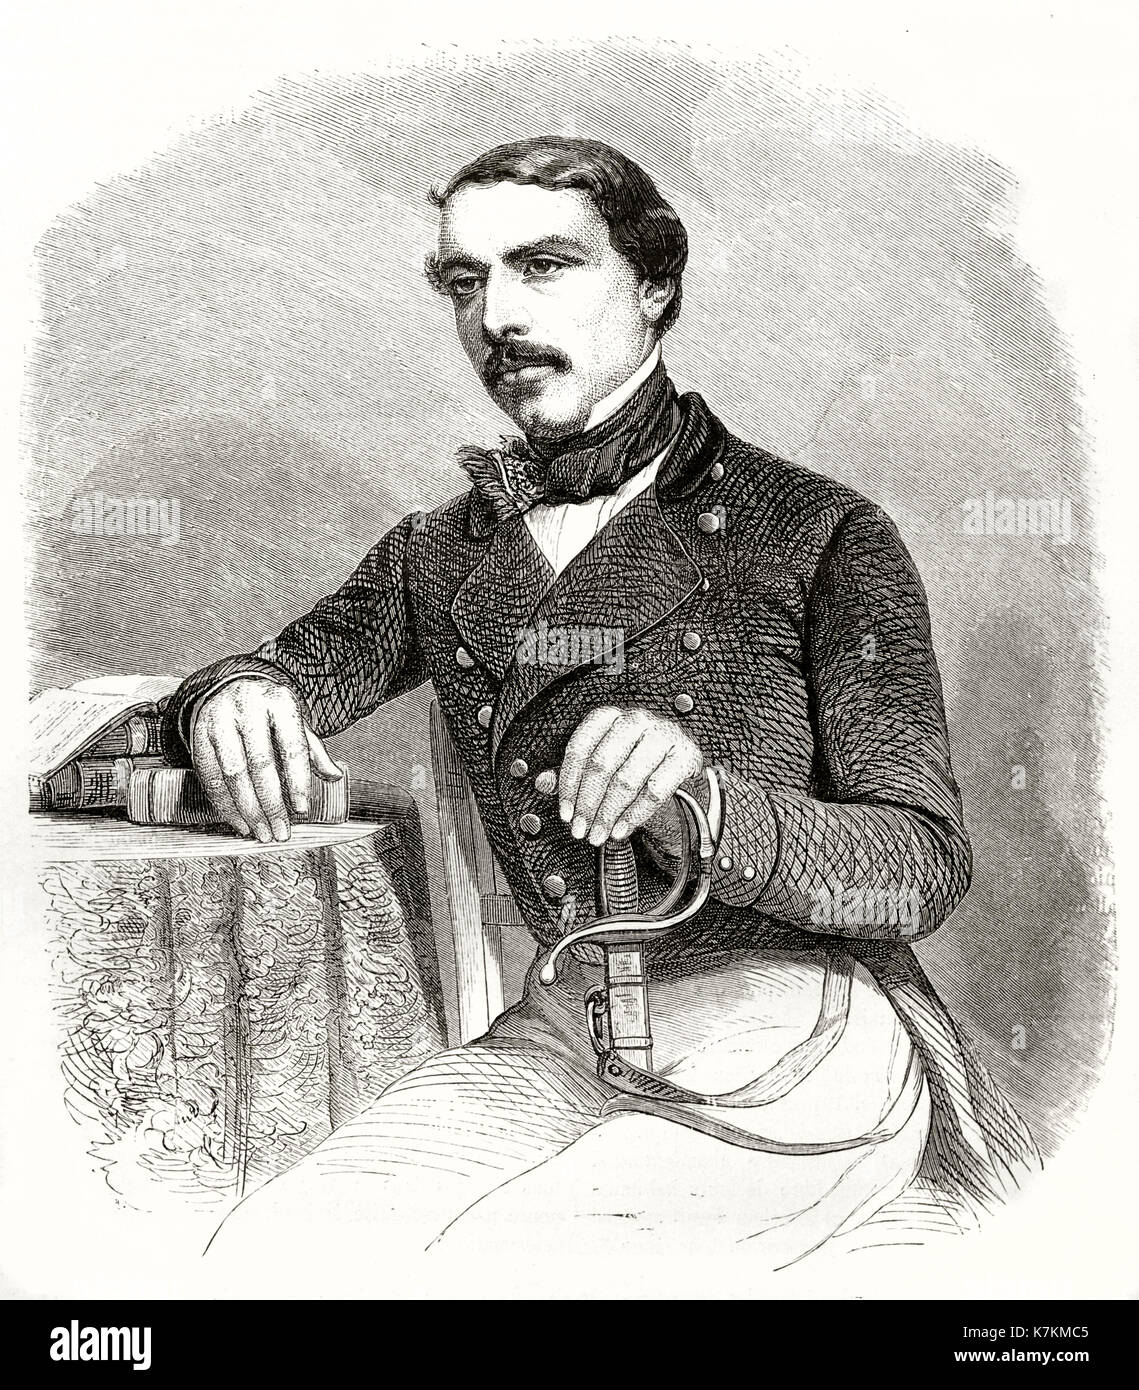 Old engraved portrait of Henri Lambert, French diplomat. By Hadamard and  Verdeil, publ. on Le Tour du Monde, Paris, 1862